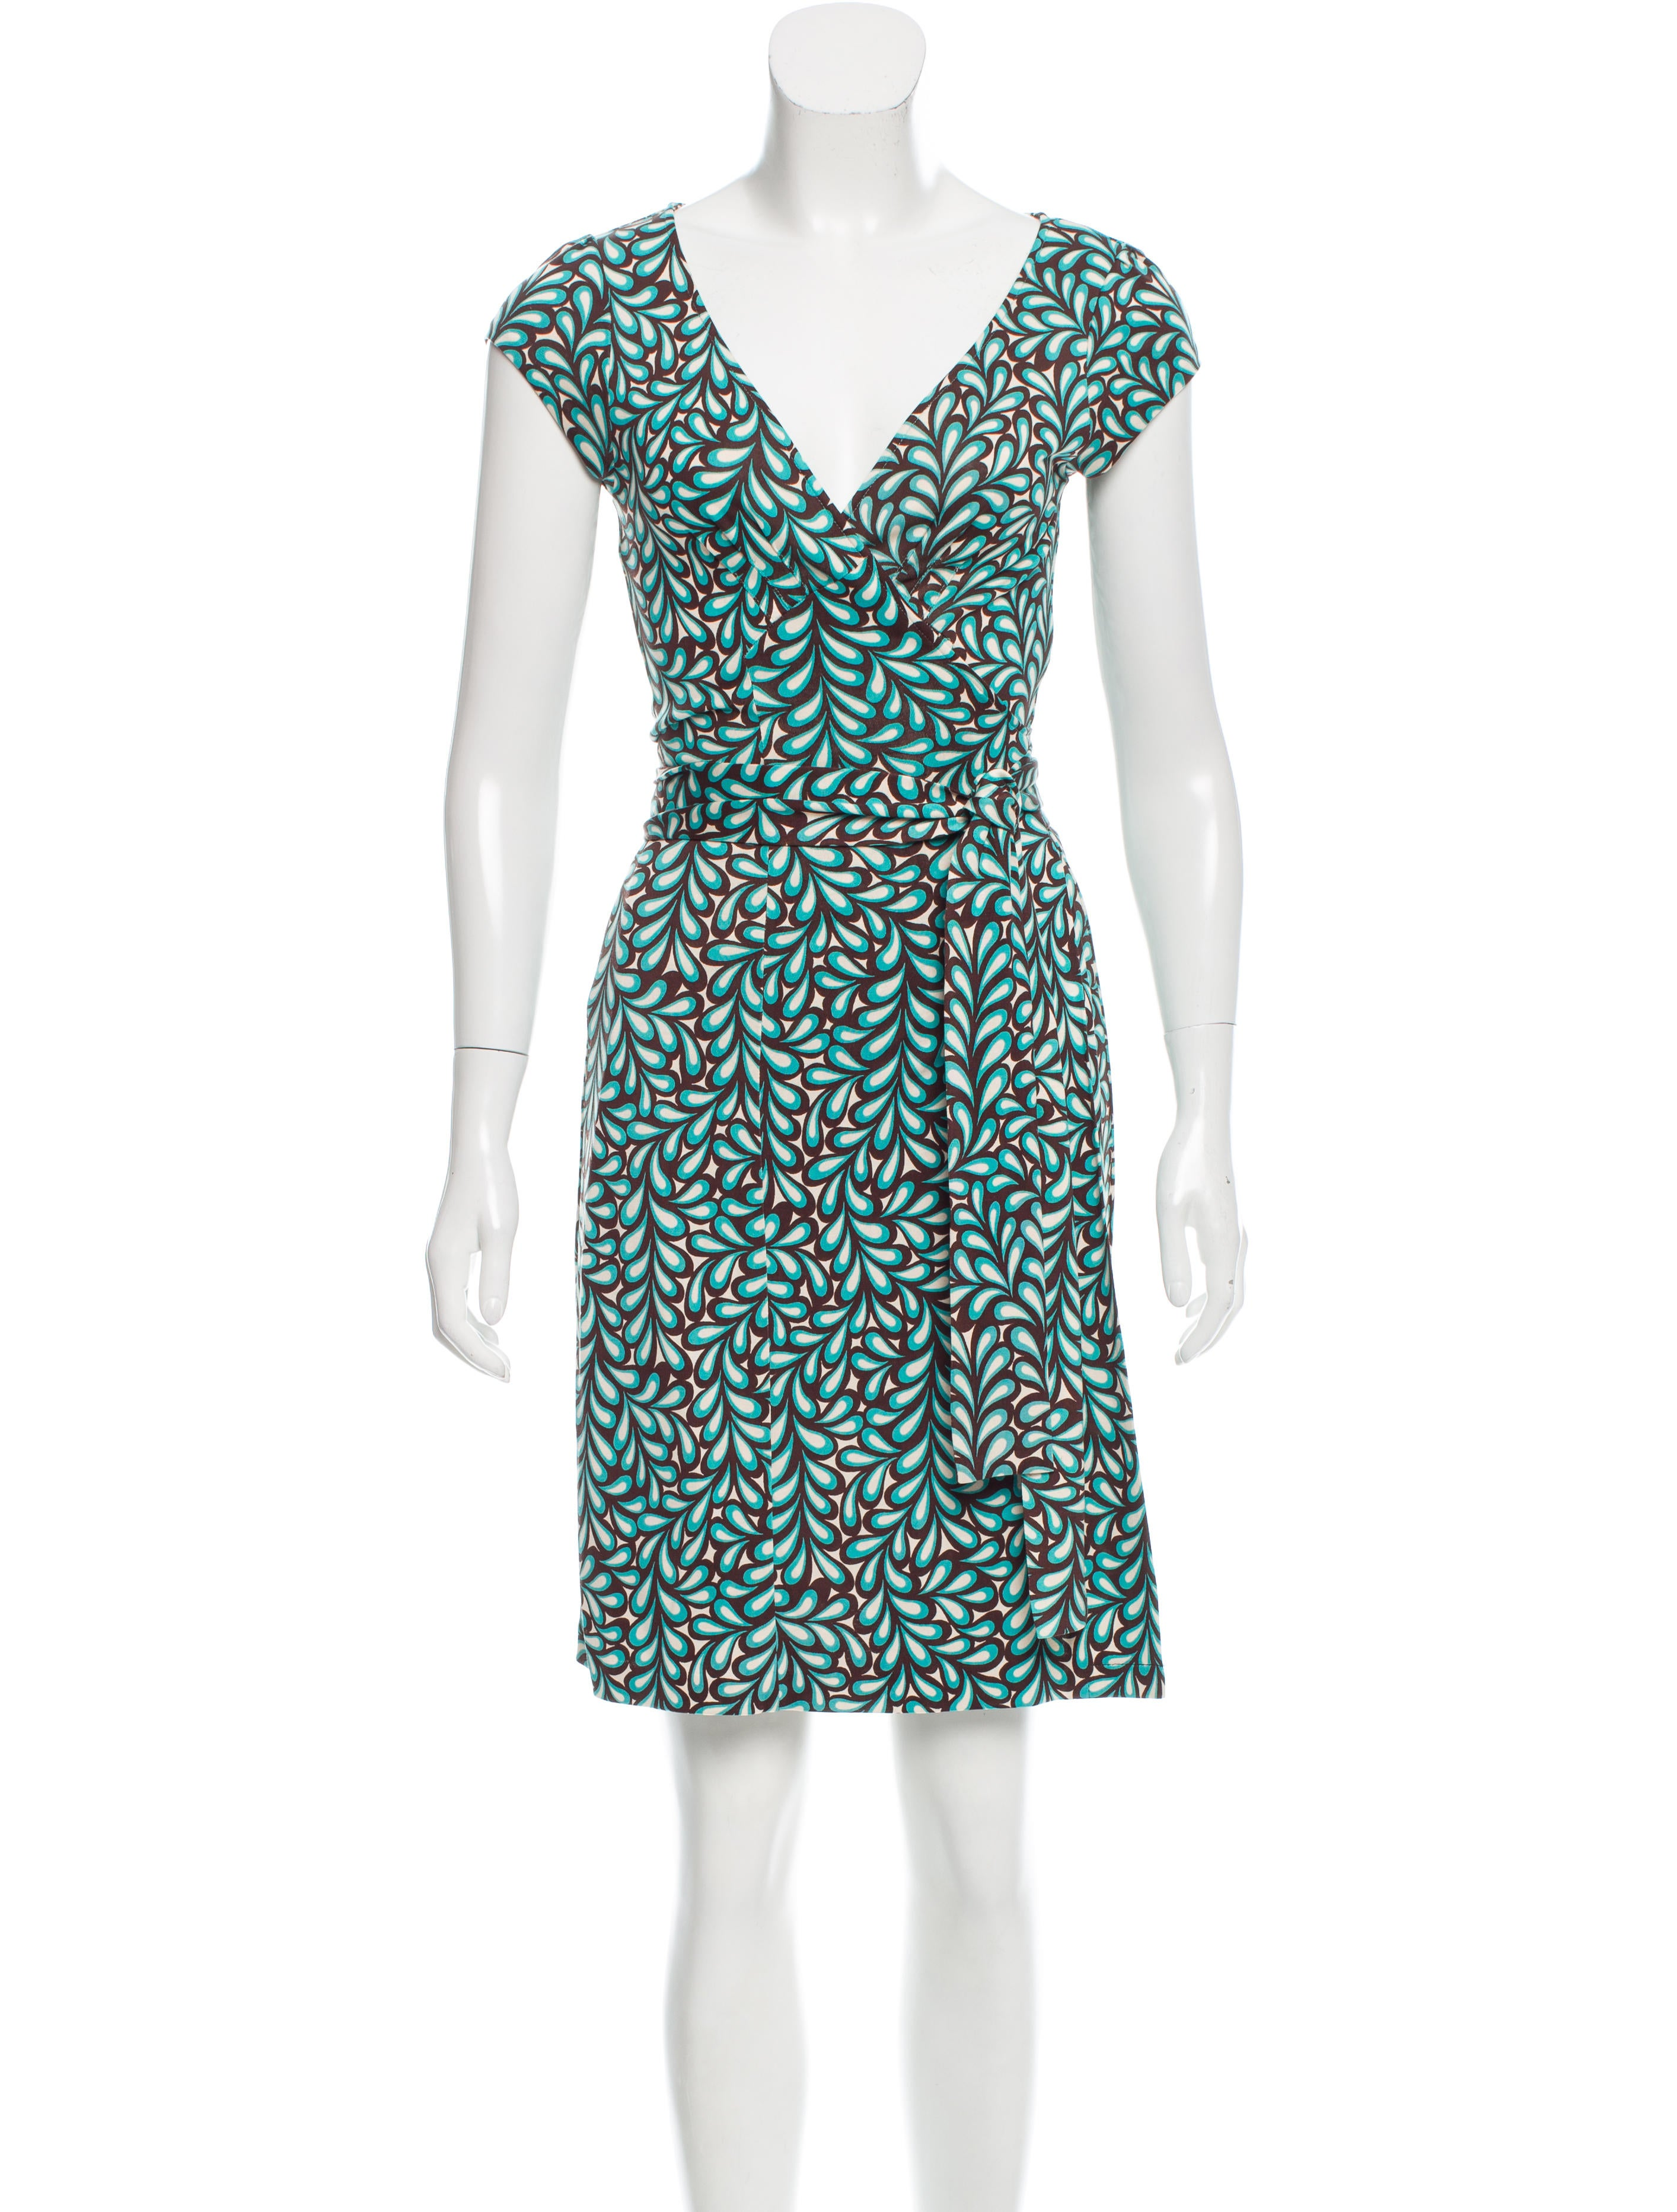 Diane von furstenberg kye silk dress clothing for Diane von furstenberg clothes